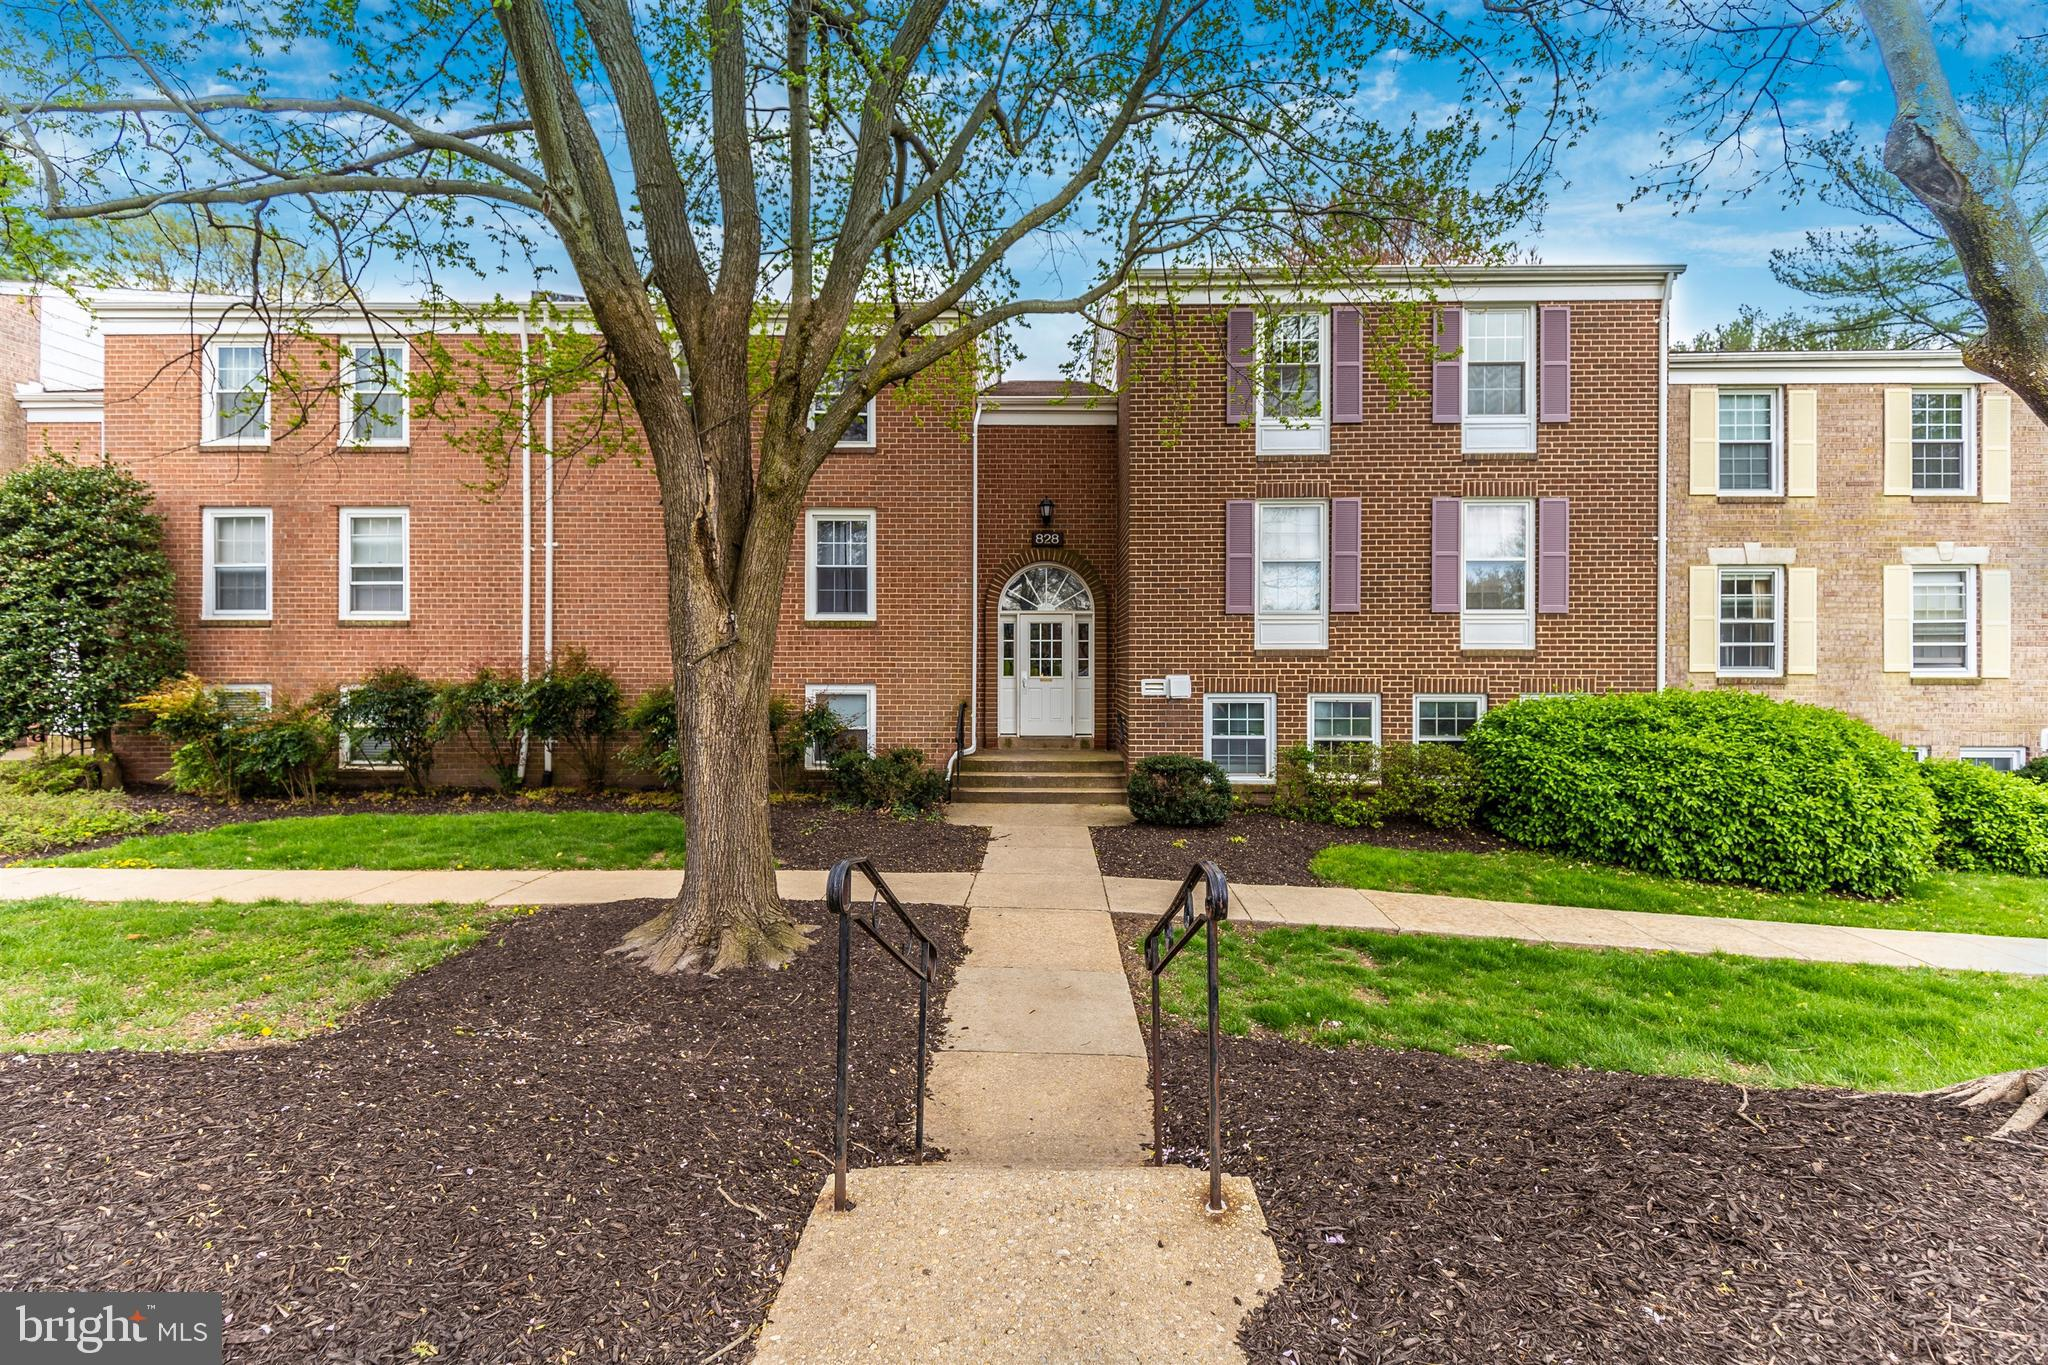 Buyer Financing Fell Through!  This Penthouse unit is back on the market! Conveniently located  2bd/1ba condo located near I-270, retail, restaurants and parks.  Spacious unit with over 1,000sf!  The condo has a large living room, separate formal dining room, expansive kitchen with stainless steel appliances (dishwasher and refrigerator brand new!), 2 spacious bedrooms and updated full  bathroom!   Condo fee includes all utilities!  Not FHA approved.   Virtual tour available.